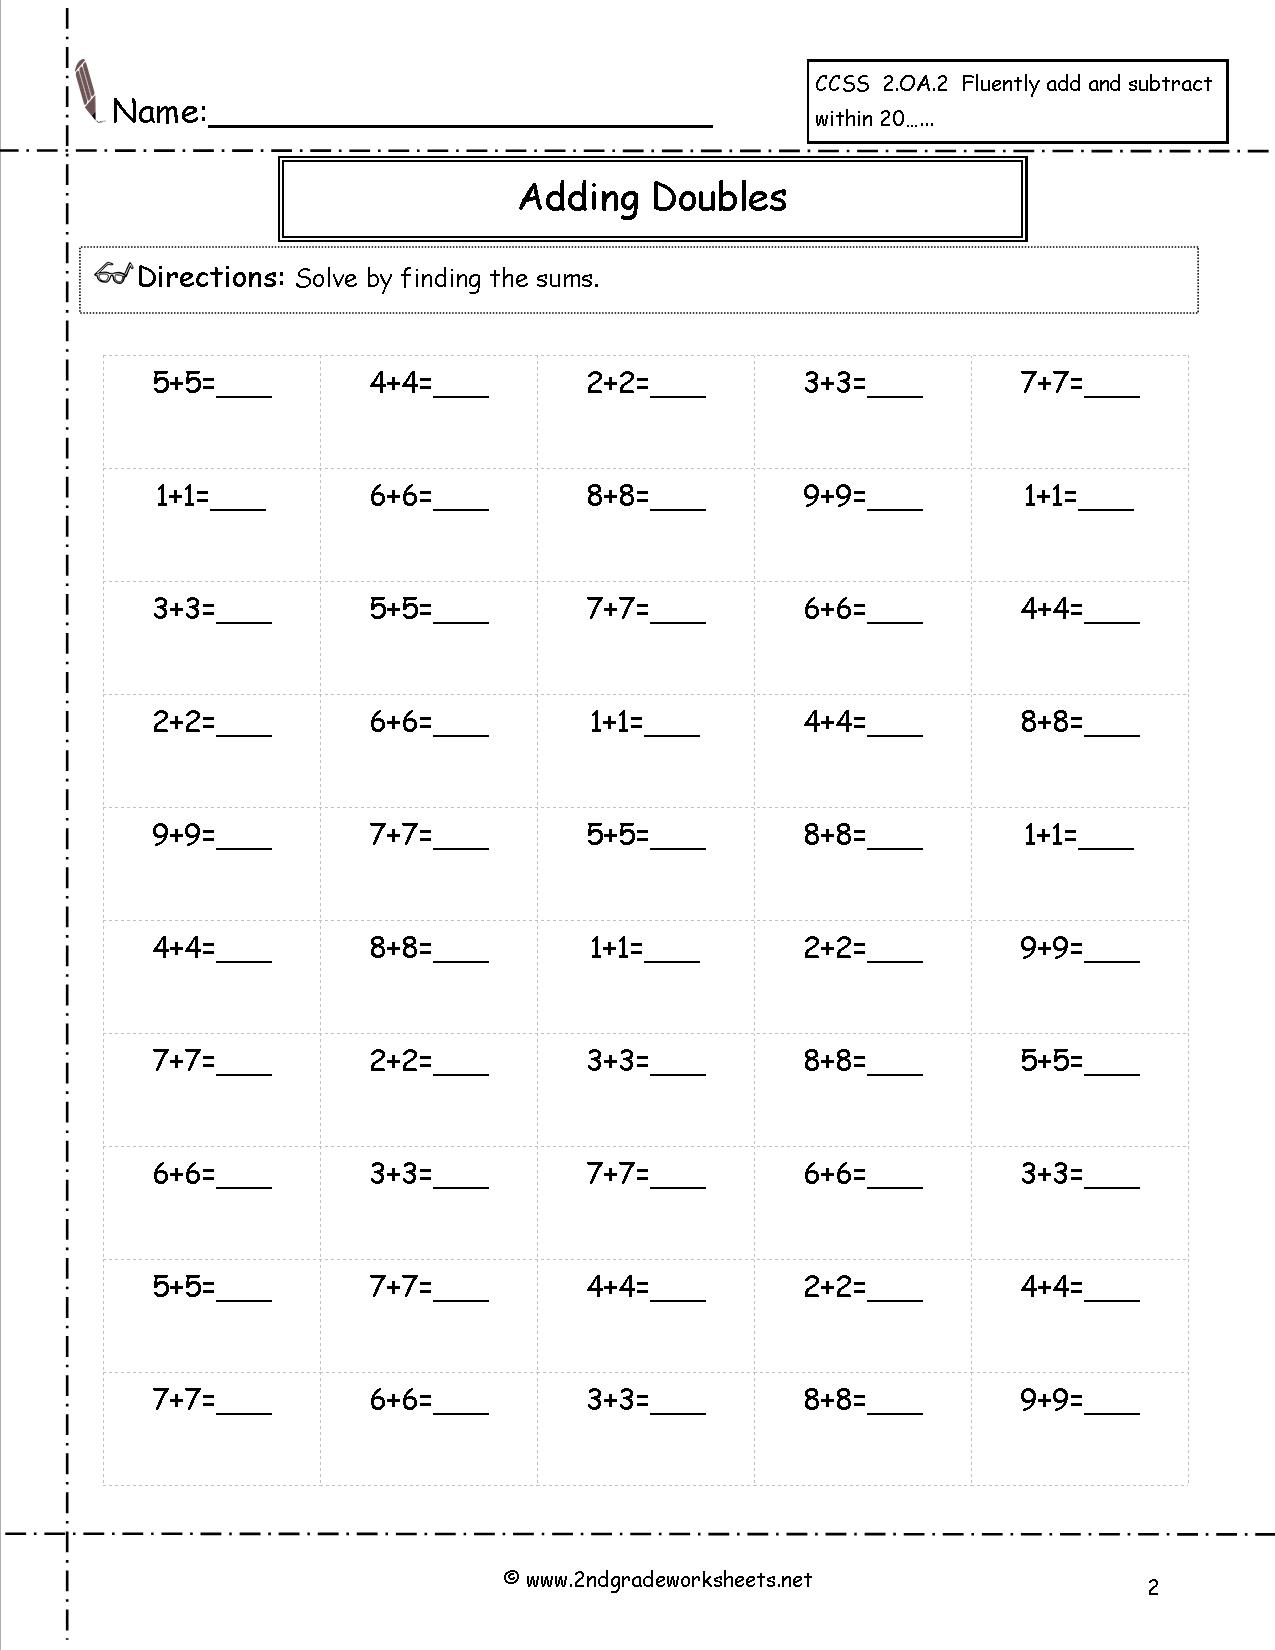 13 Best Images Of Dividing Numbers Worksheets